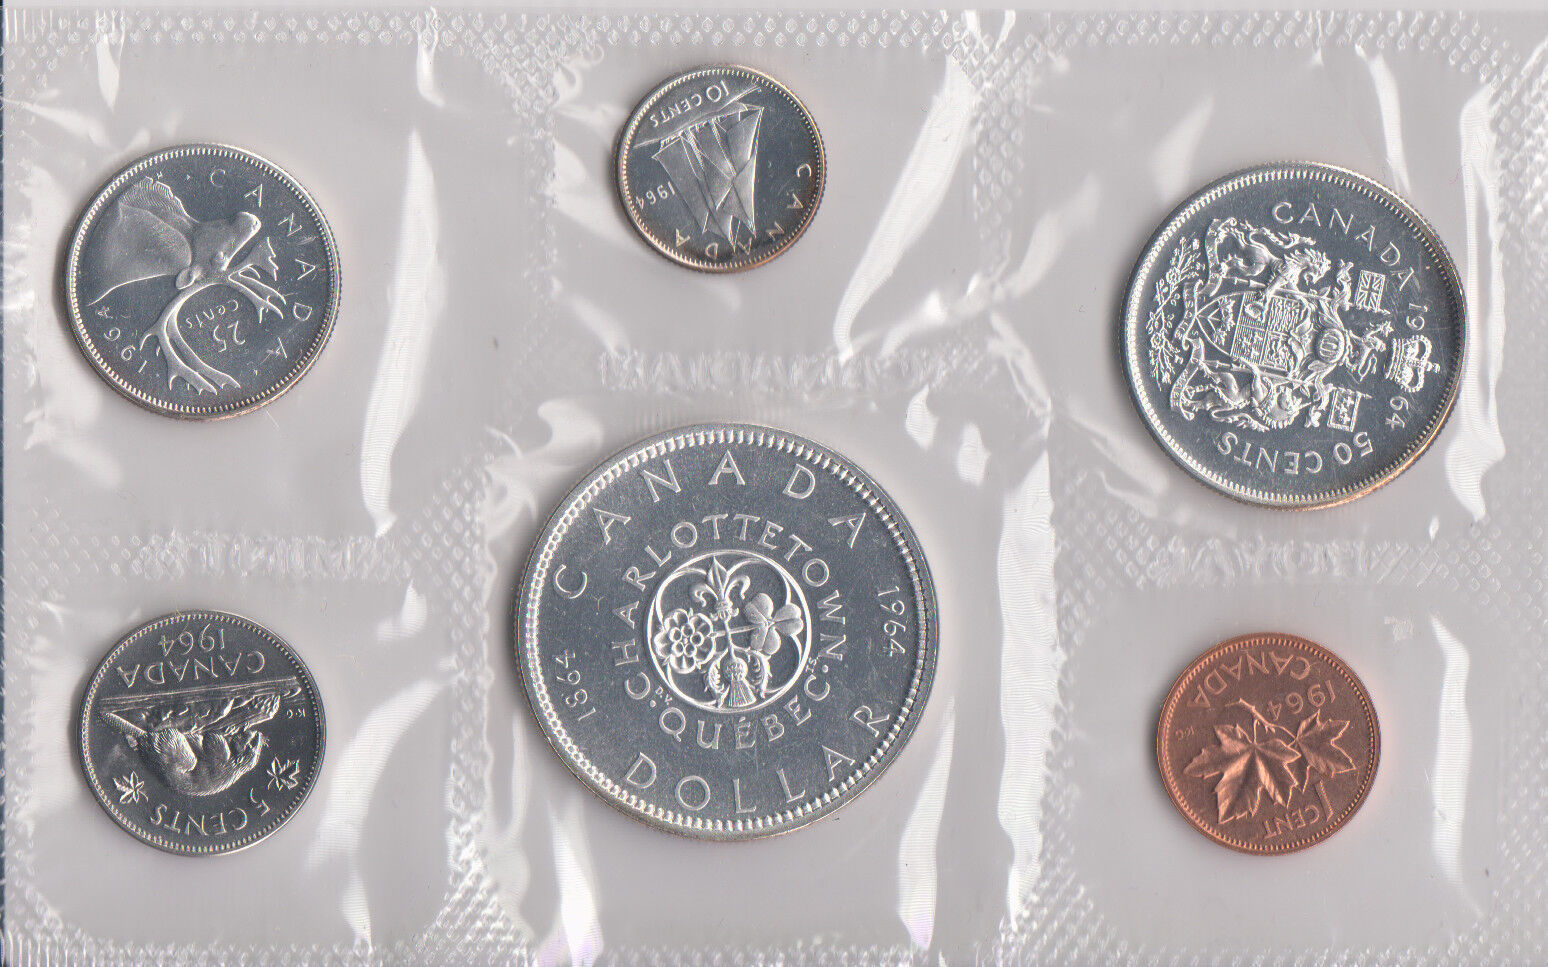 Mint Set Details About 1964 Canada Sealed Proof Like Mint Set 6 Coins Total 4 Silver Coins 80 800